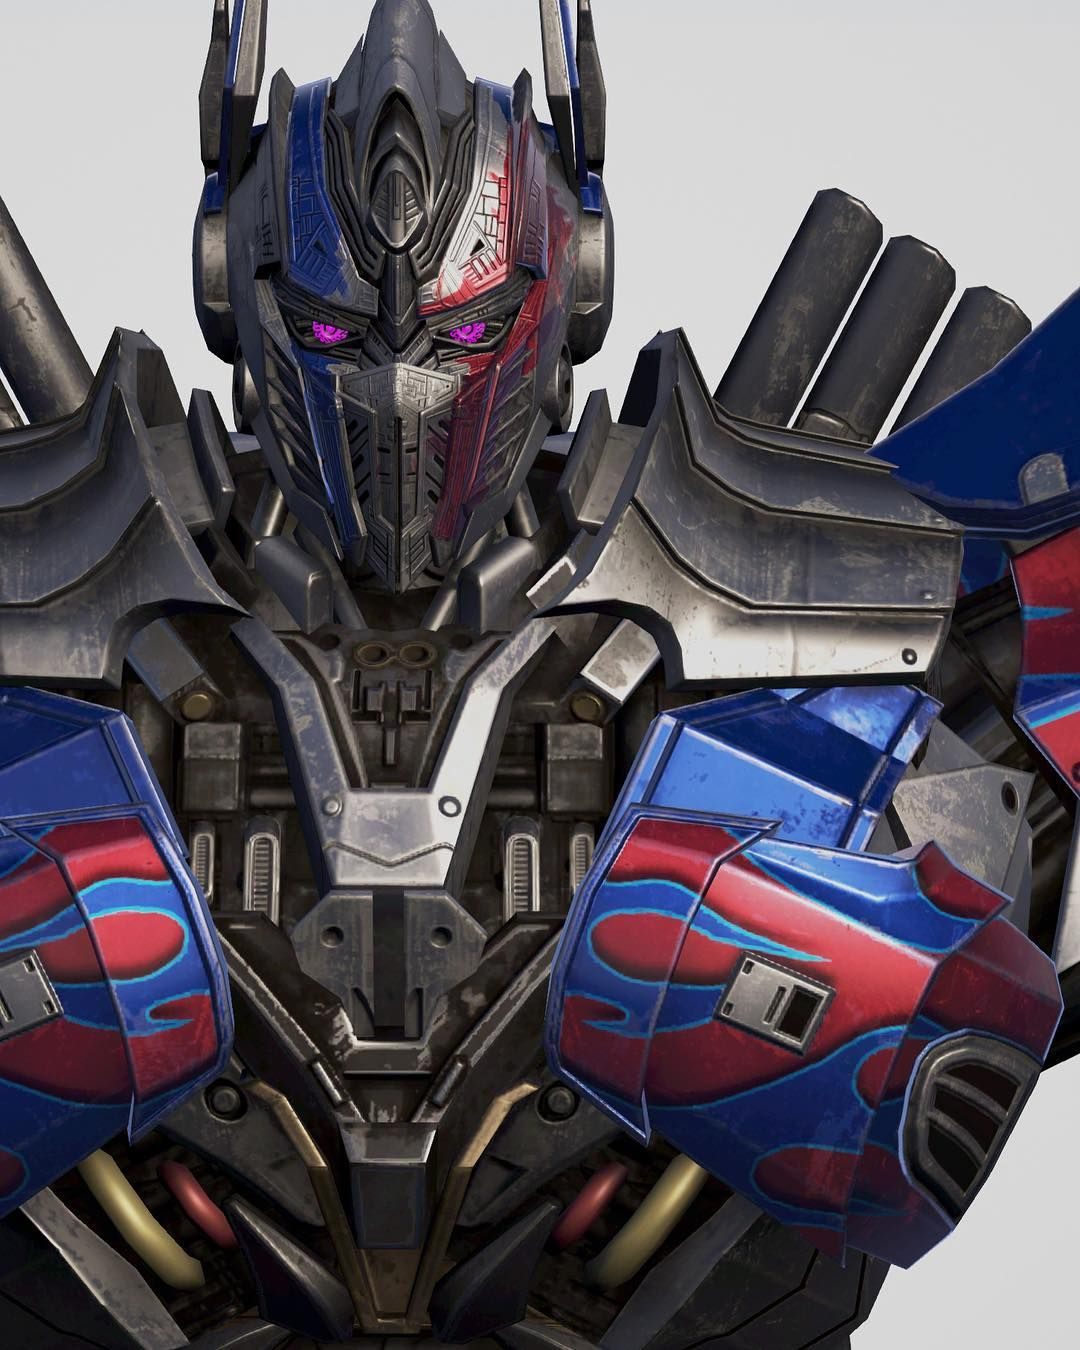 this 3d model of optimus prime is the greatest image i've ever seen